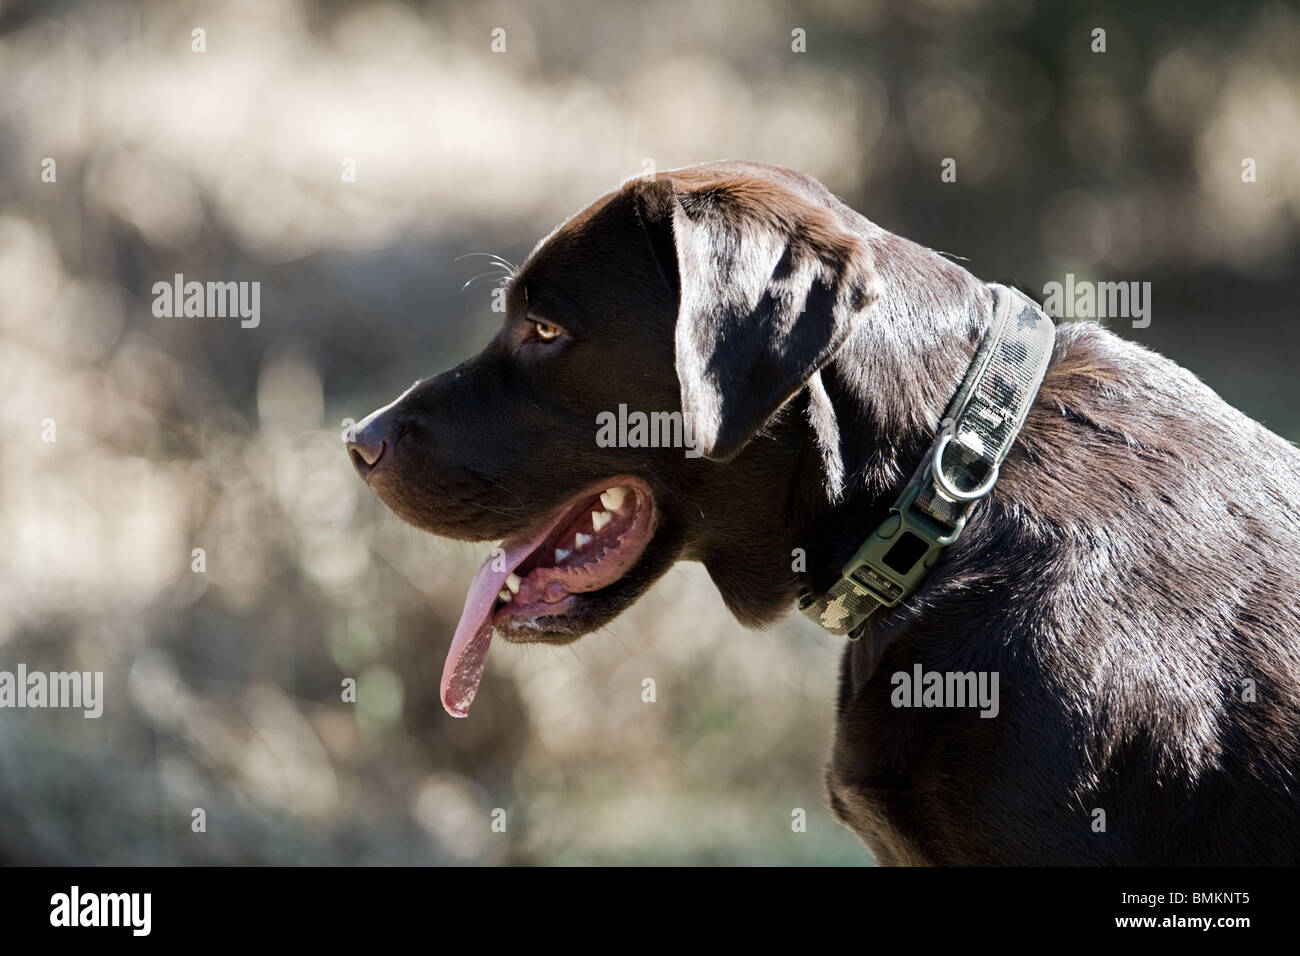 Profile Shot of a Chocolate Labrador Outdoors - Stock Image